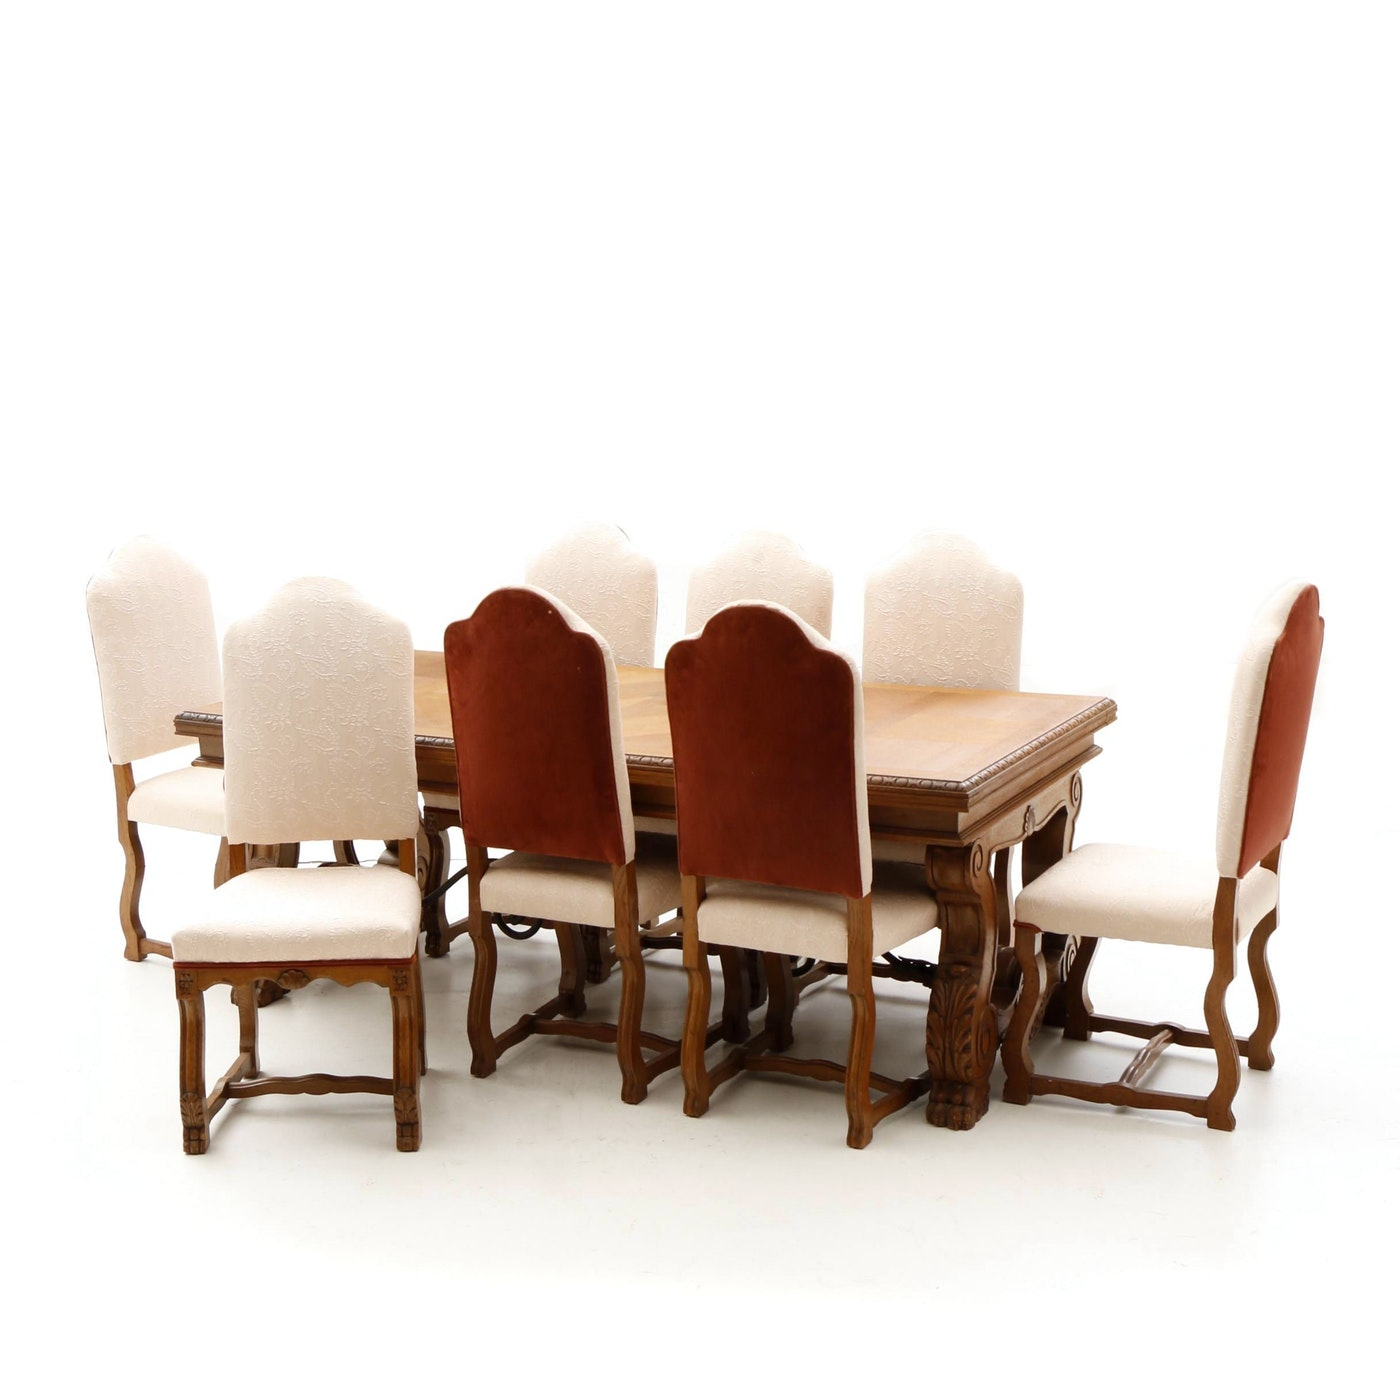 Renaissance Revival Style Dining Table and Chairs in Oak